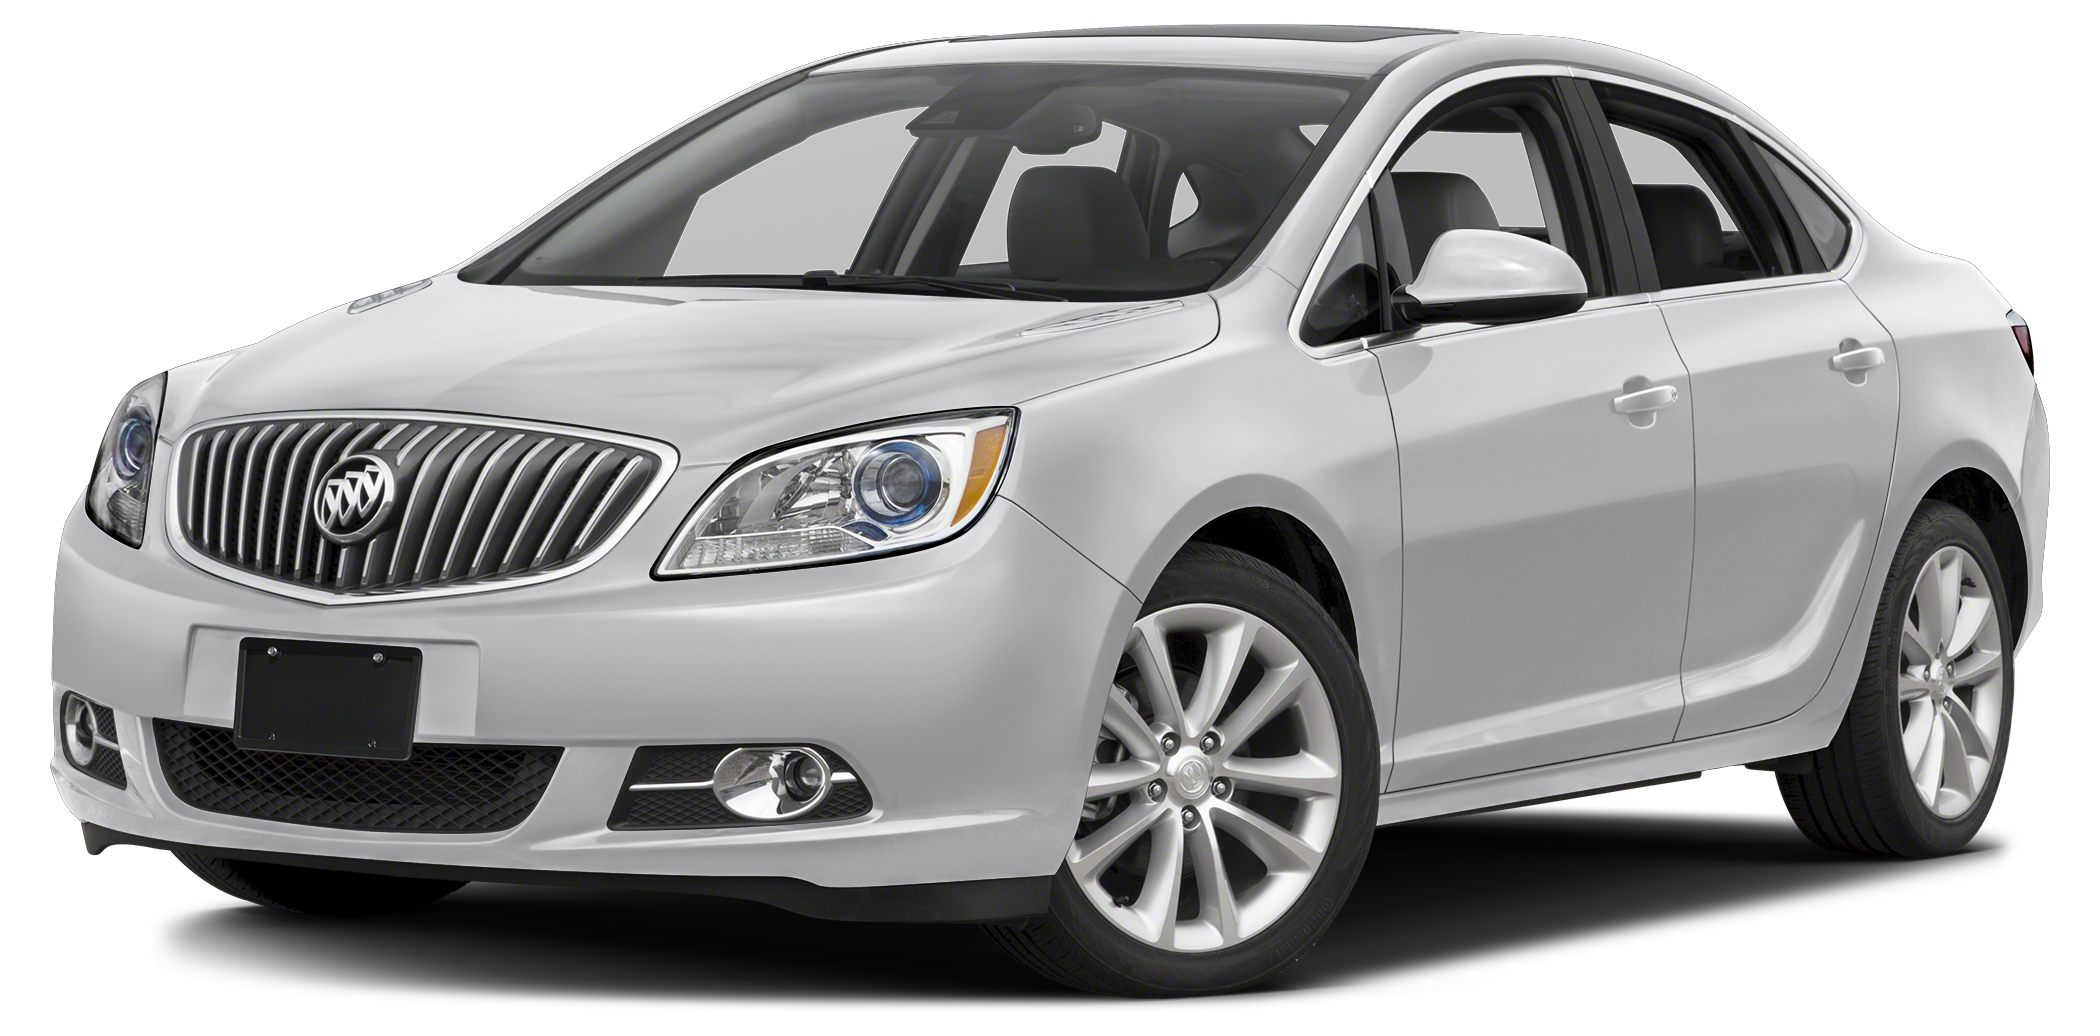 2016 Buick Verano 1SV Contact Conley Buick GMC today for information on dozens of vehicles like th